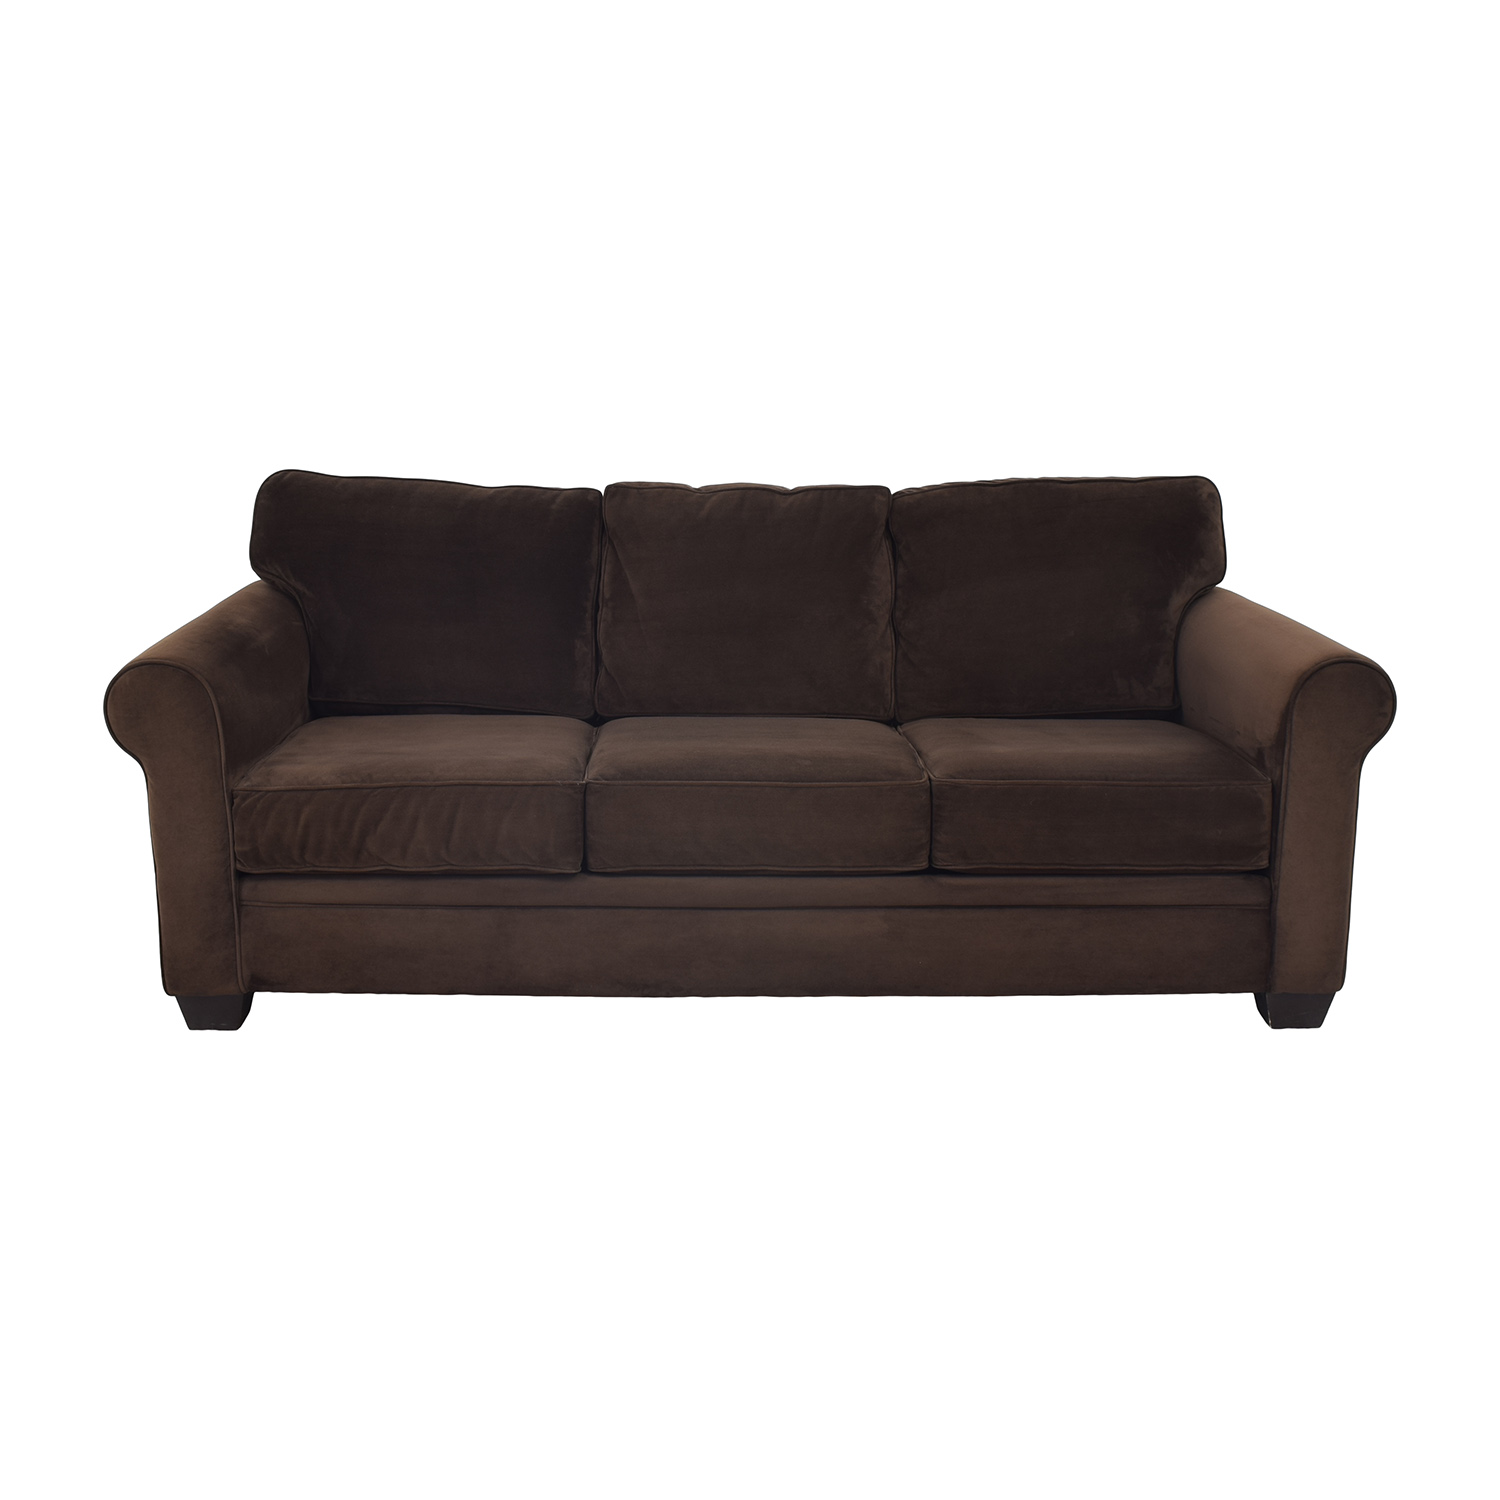 Macy's Macy's Roll Arm Sofa ct